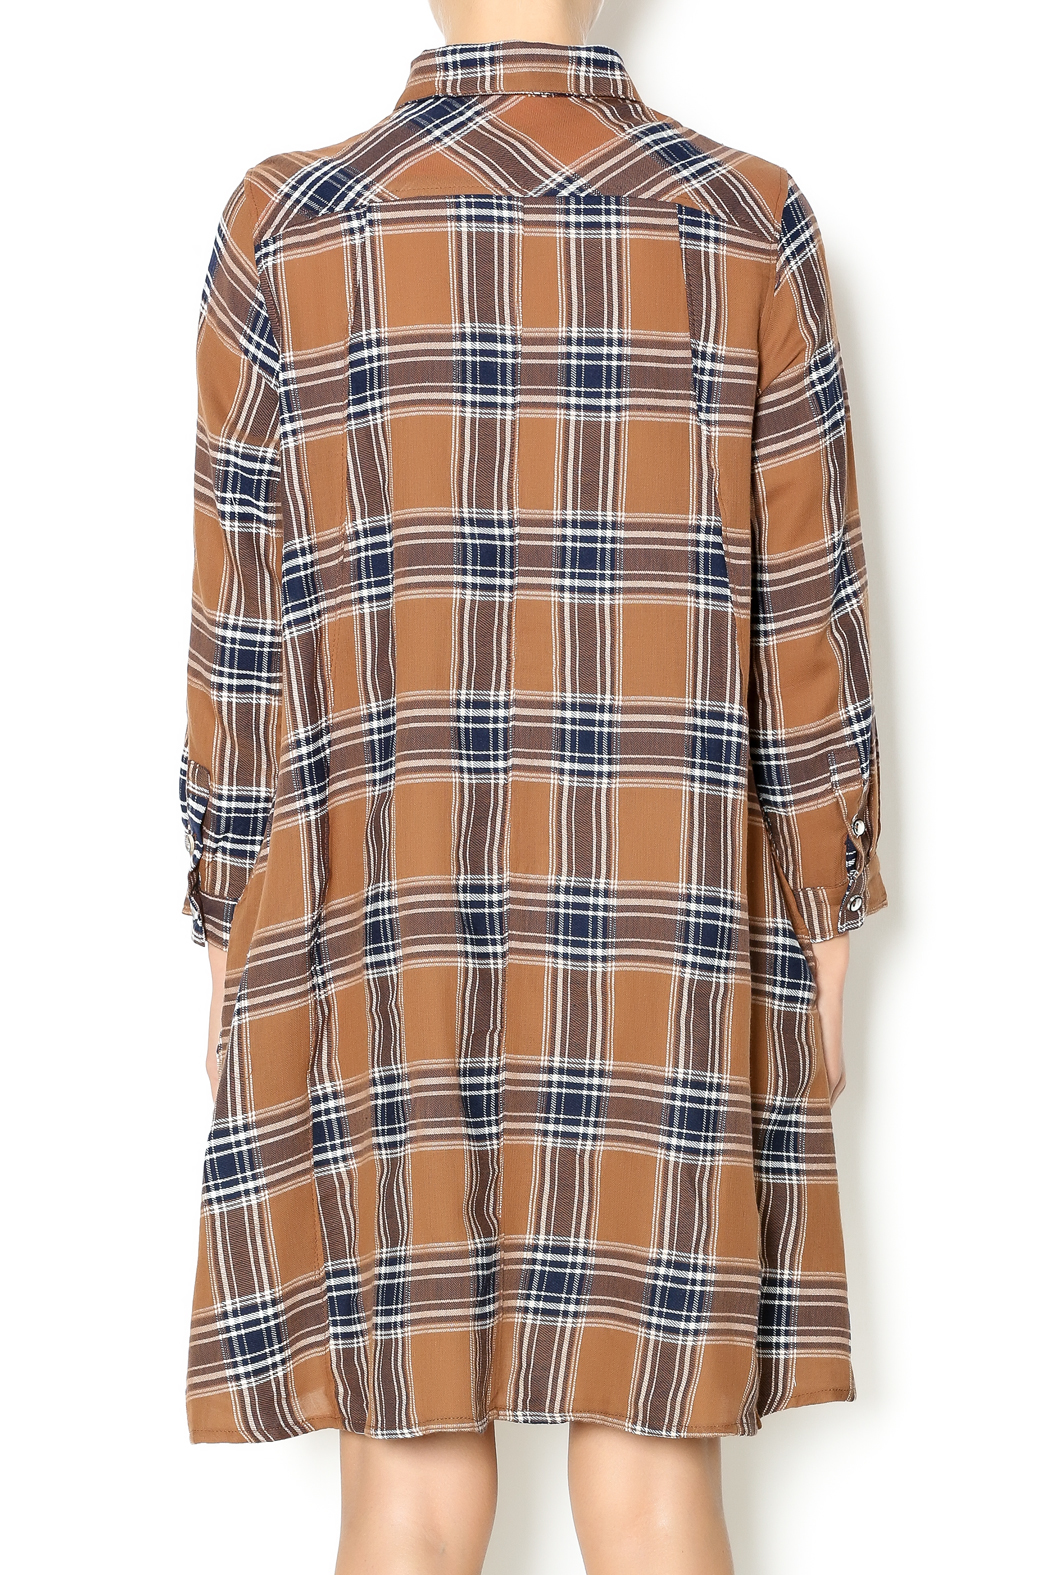 NU New York Fearless Flannel Dress - Back Cropped Image